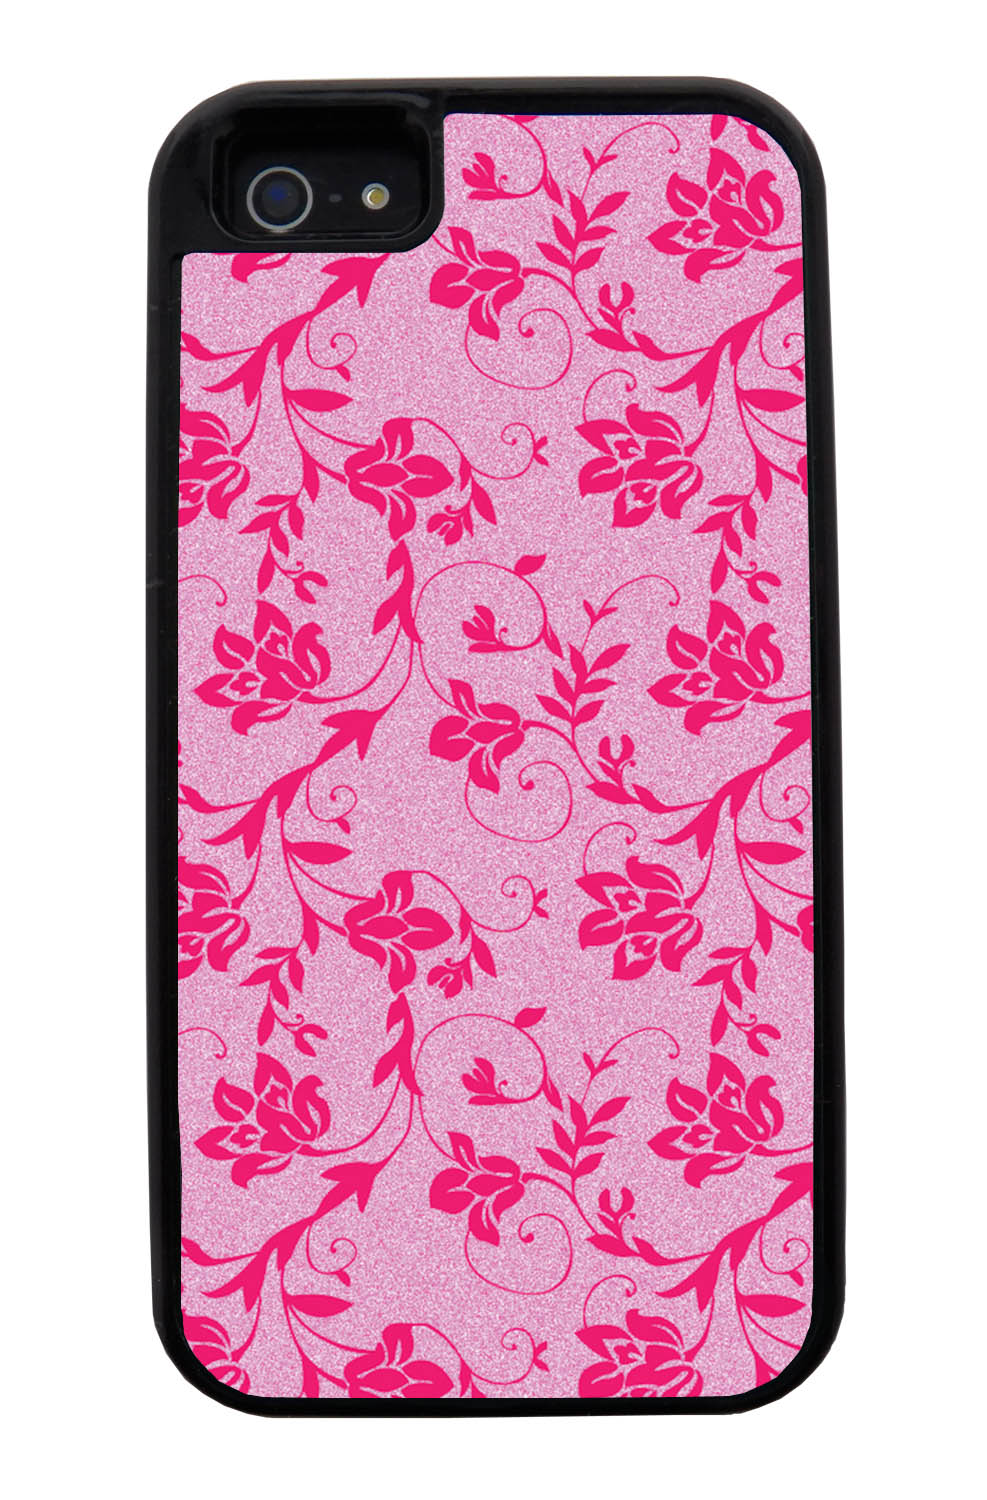 Apple iPhone 5 / 5S Flower Case - Hot Pink on Textured Pink - Stencil Cutout - Black Tough Hybrid Case